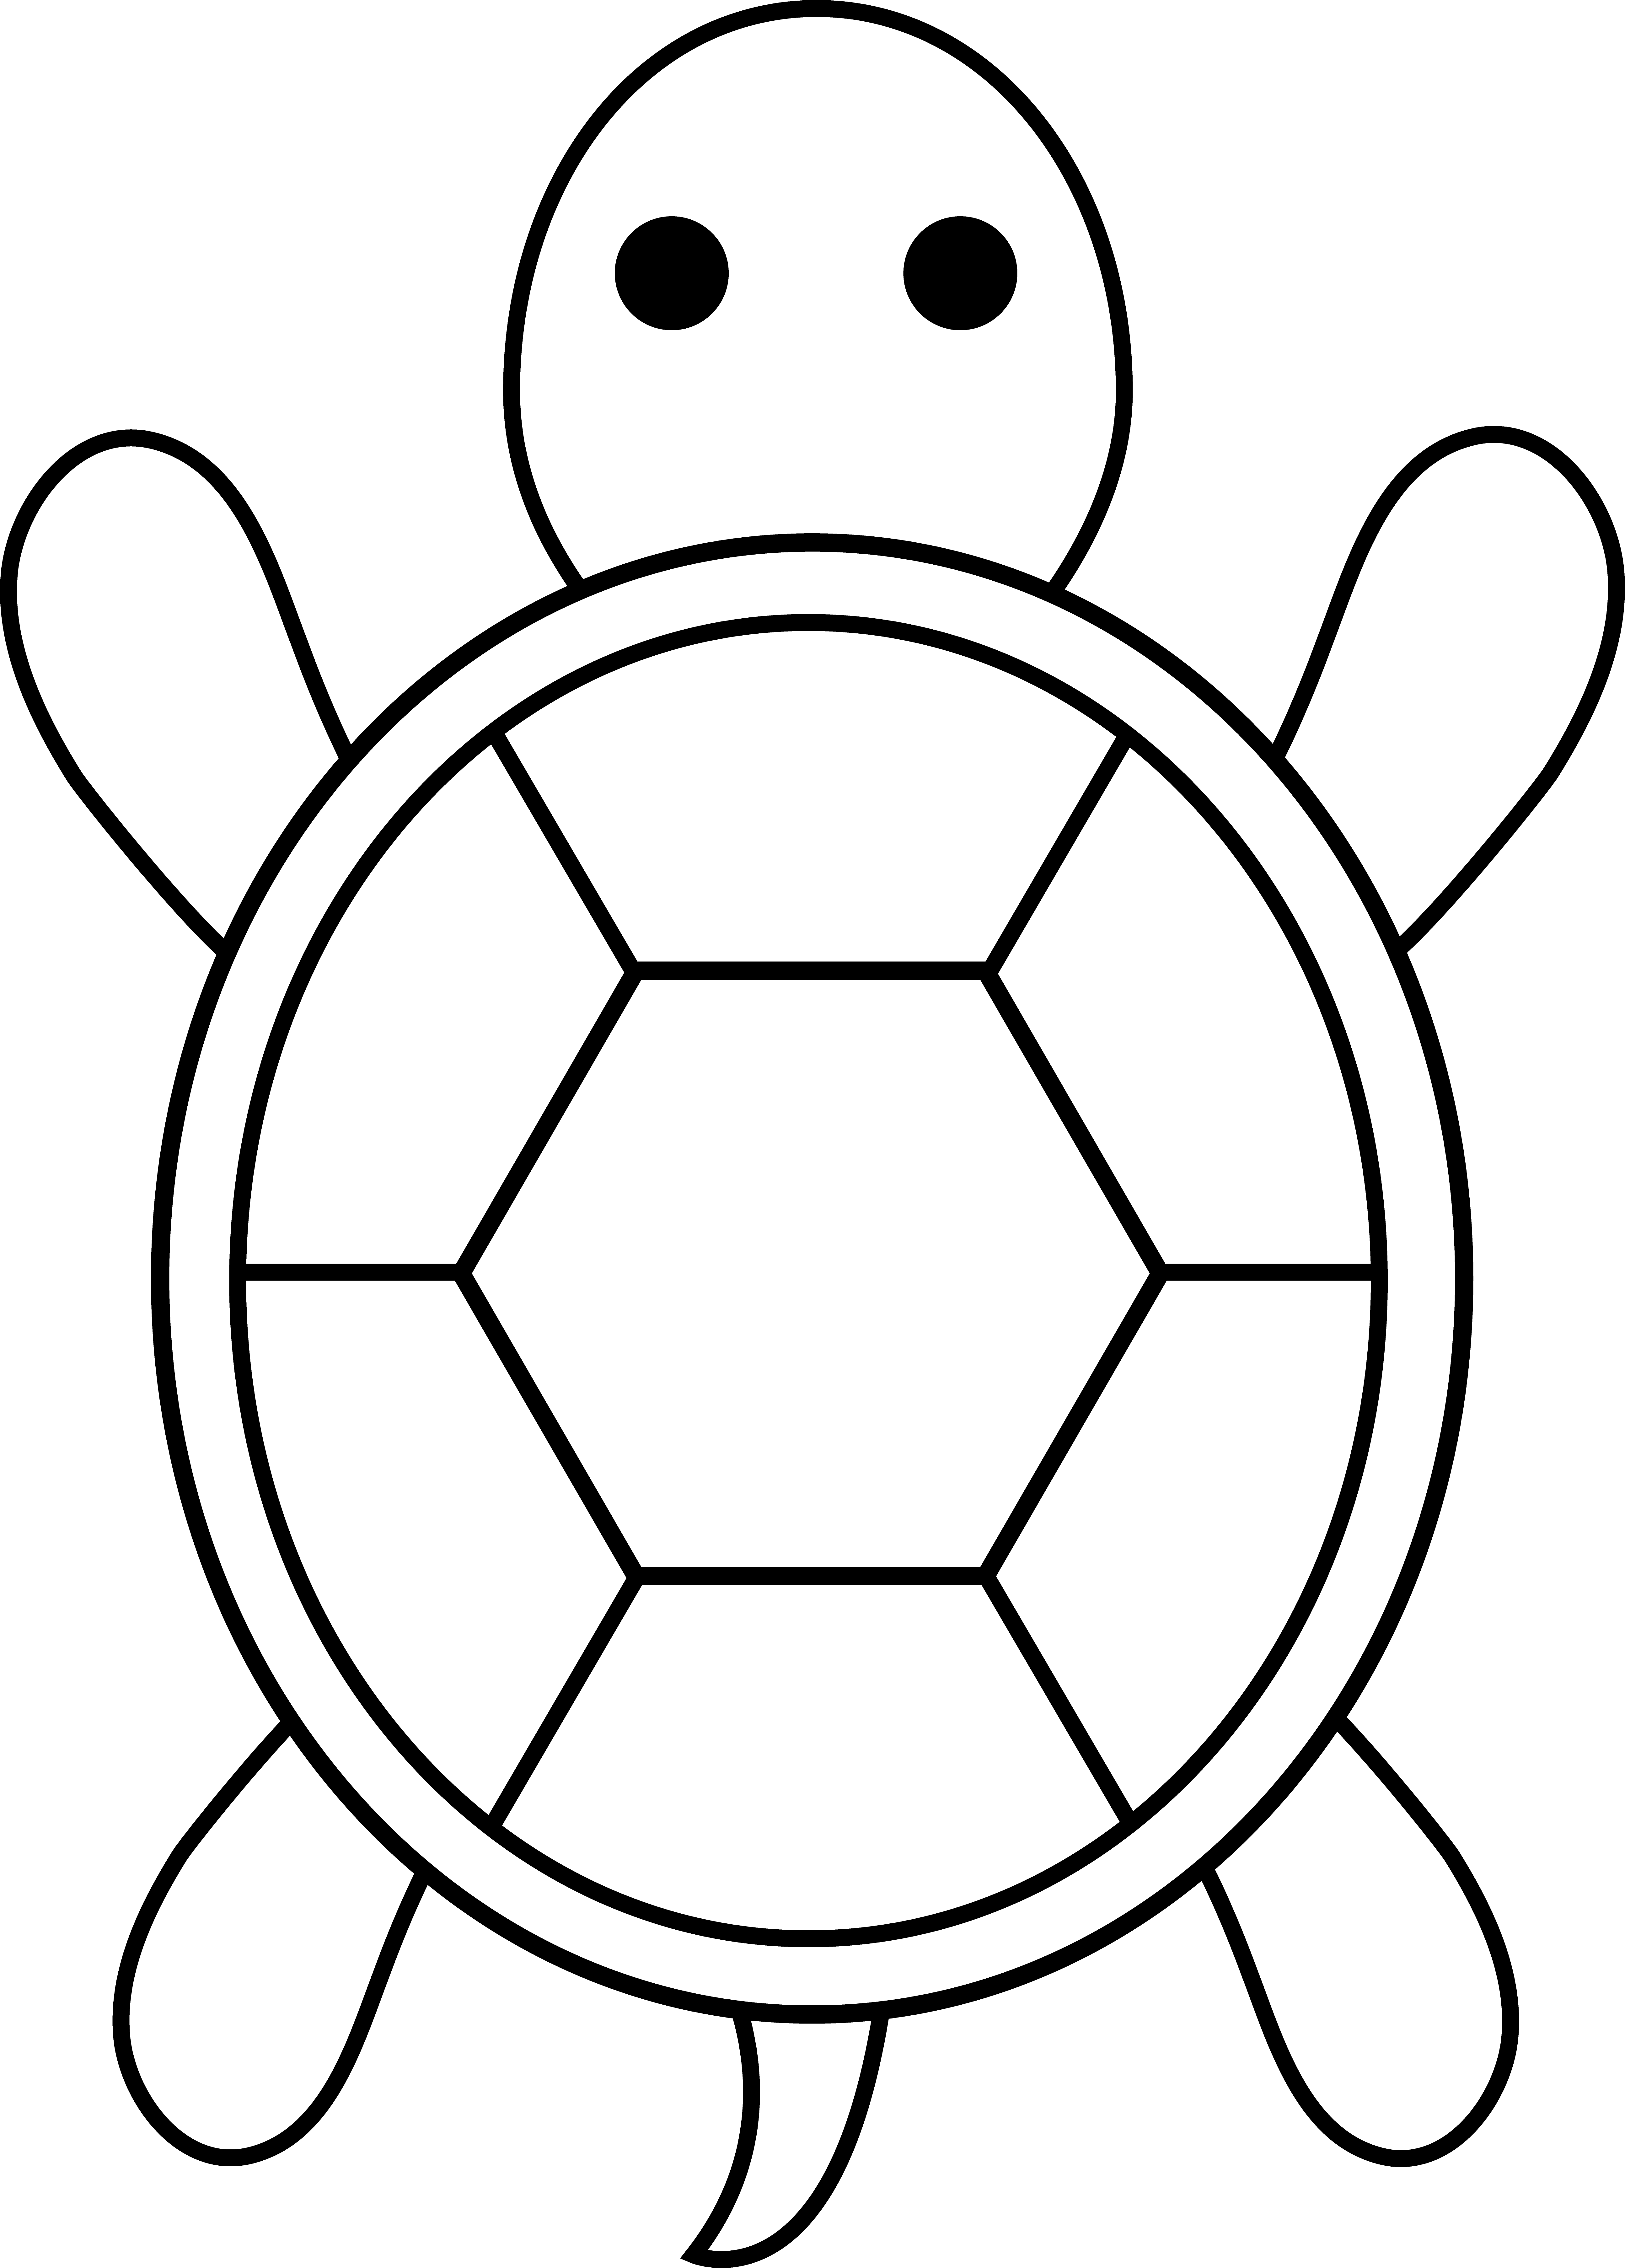 E clipart elephant coloring page. Turtle for applique pinterest